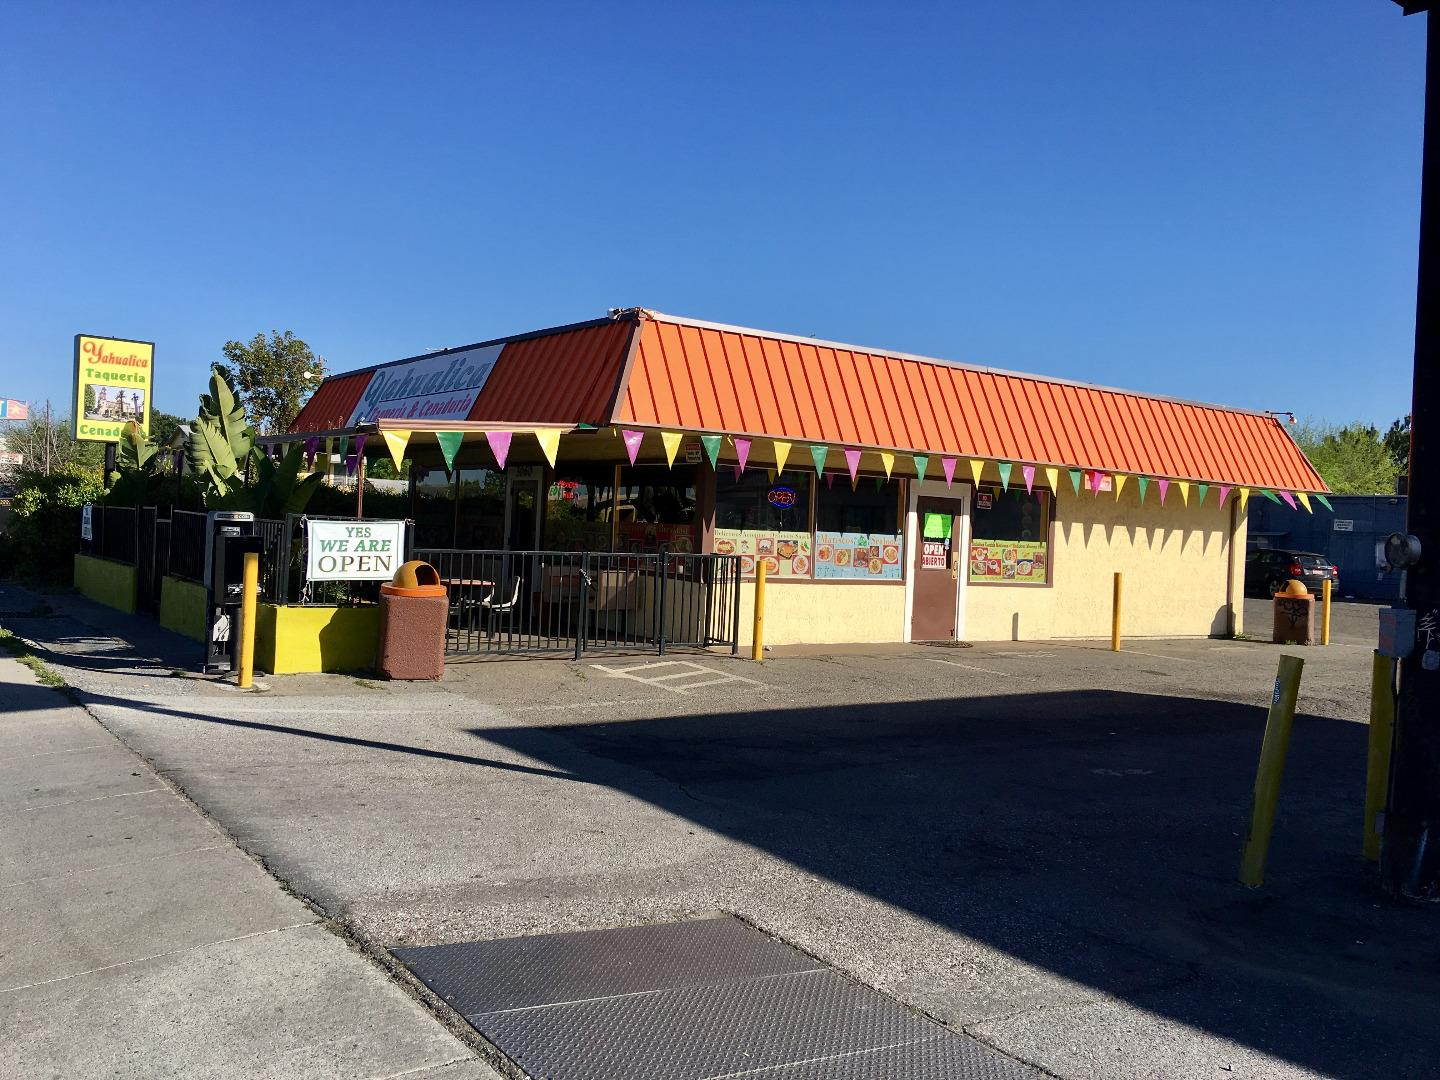 Commercial for Sale at 3060 Monterey Highway San Jose, California 95111 United States